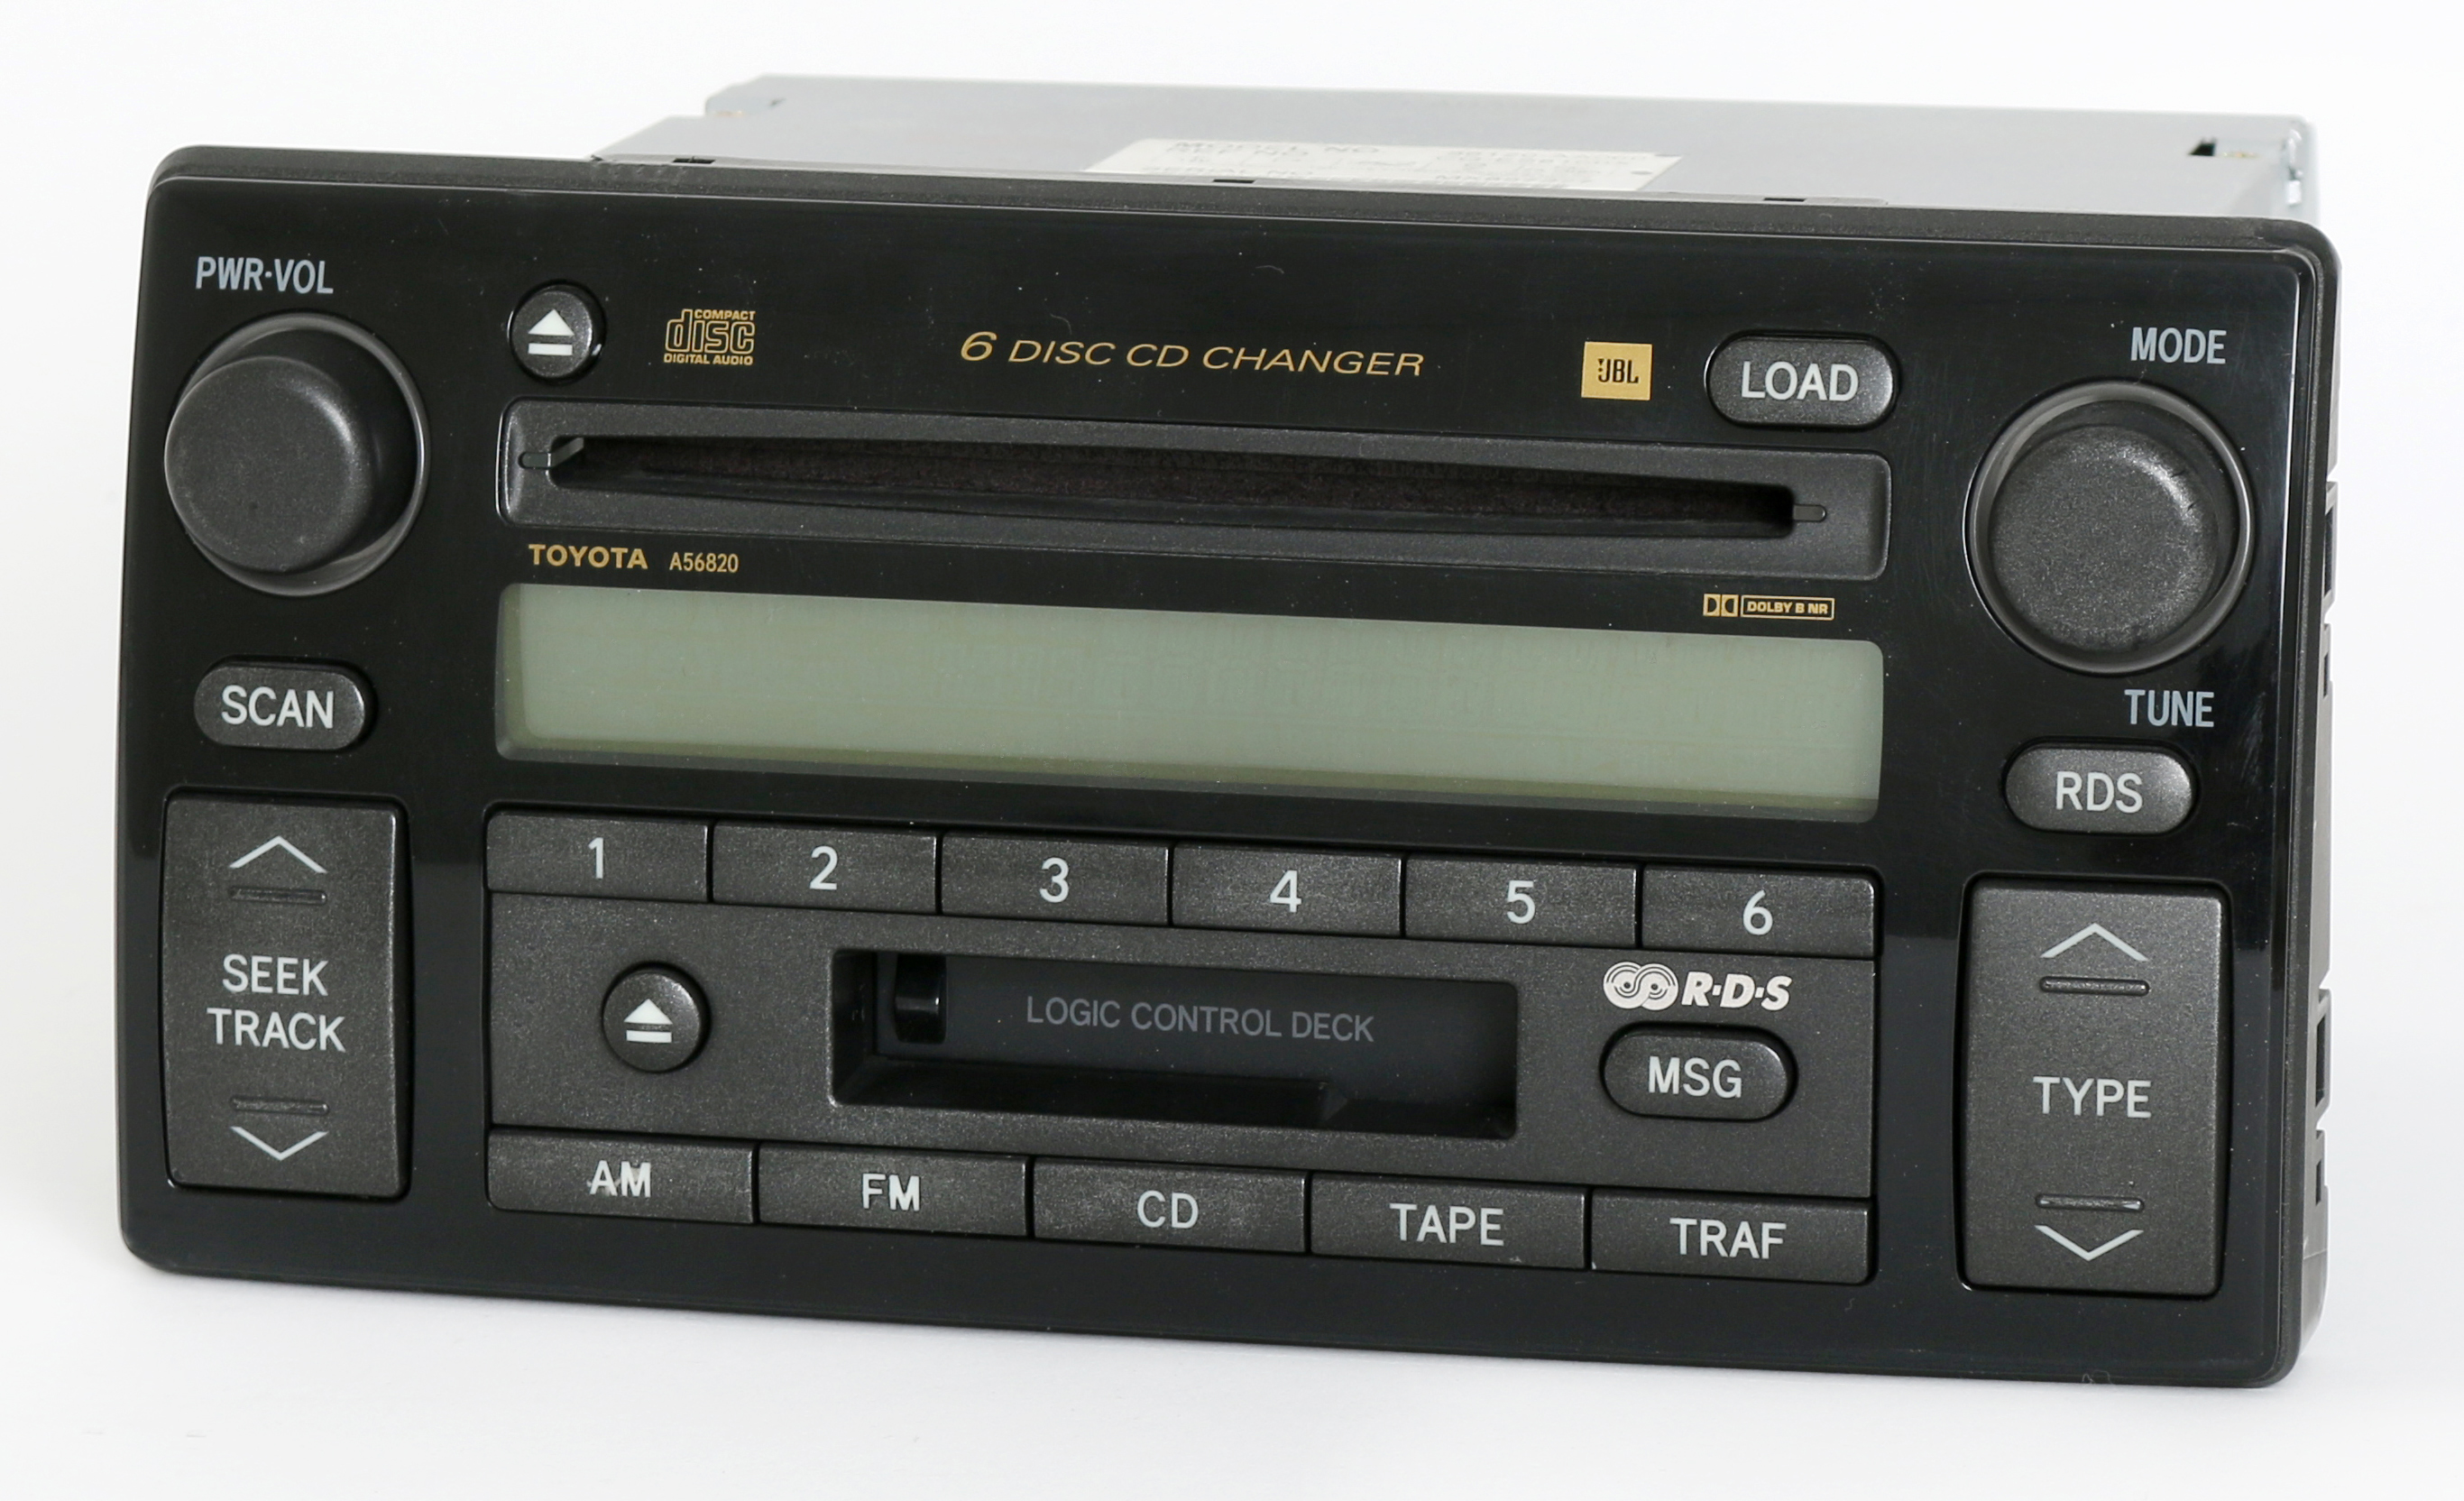 Toyota Camry 2002-2004 Radio AM FM 6 Disc CD Cassette Player 86120-AA060 A56820 Refurbished by Toyota